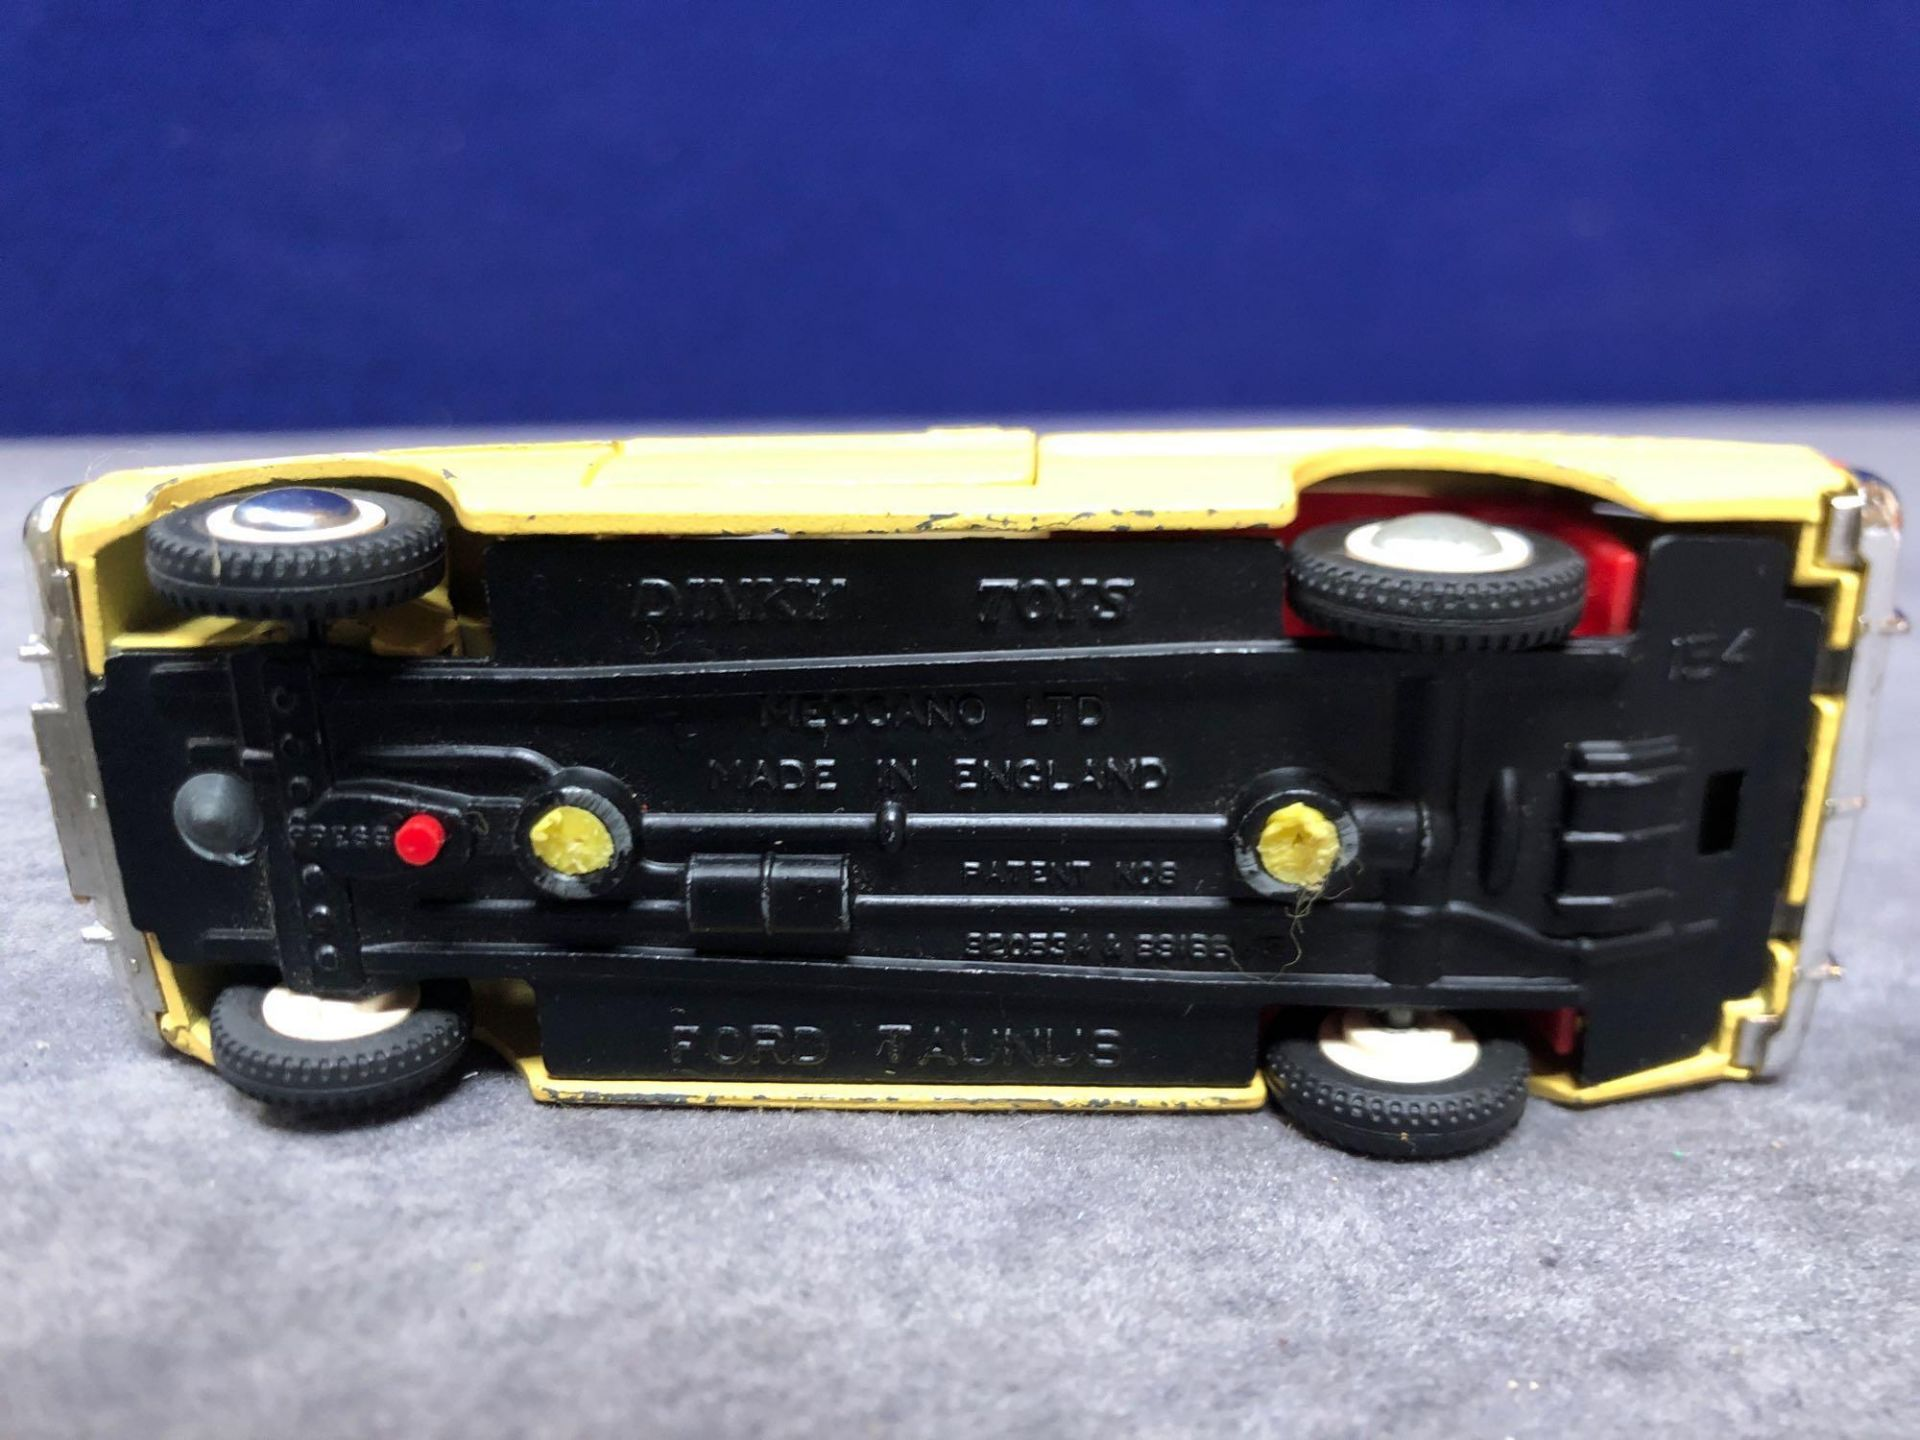 Dinky #154 Ford Taunus 17m Yellow/White - Red Interior 1966 - 1969 Unboxed Very Good Condition - Image 4 of 4